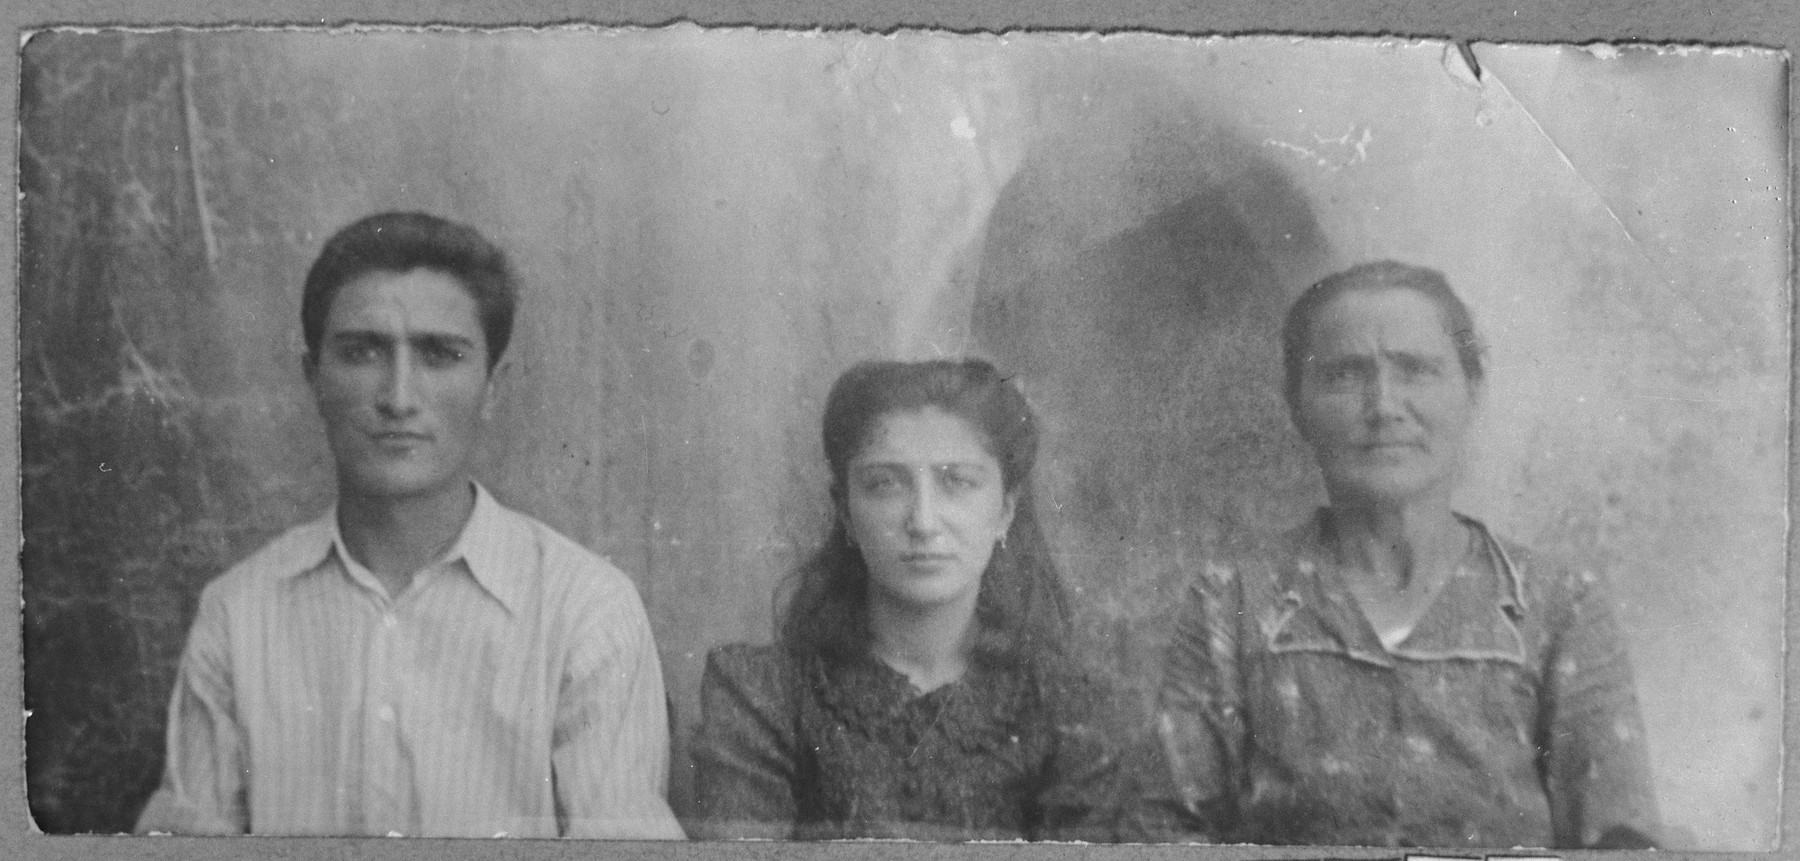 Portrait of Sol Hasson, wife of Avram Hasson, Isak Hasson, son of Avram, and Rahel Hasson, daughter of Avram.  Isak was a tailor and Rahel, a student.  They lived at Sinagogina 6 in Bitola.